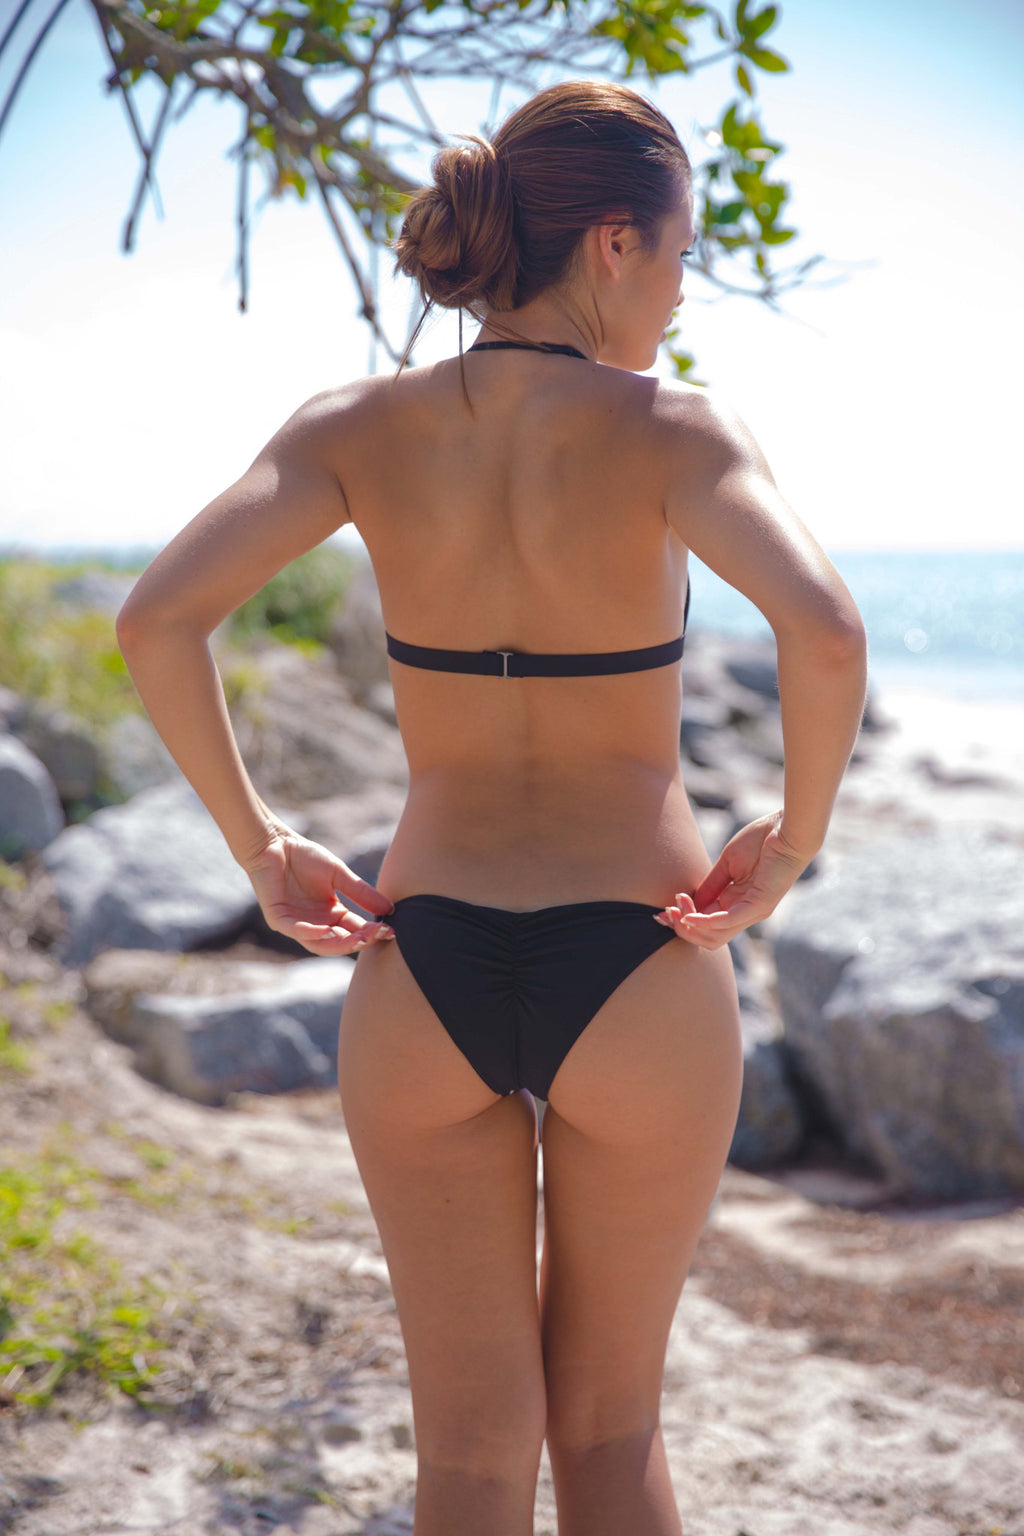 Blue Life Flower Bomb Skimpy Bottom in Black - Boho Bum Island